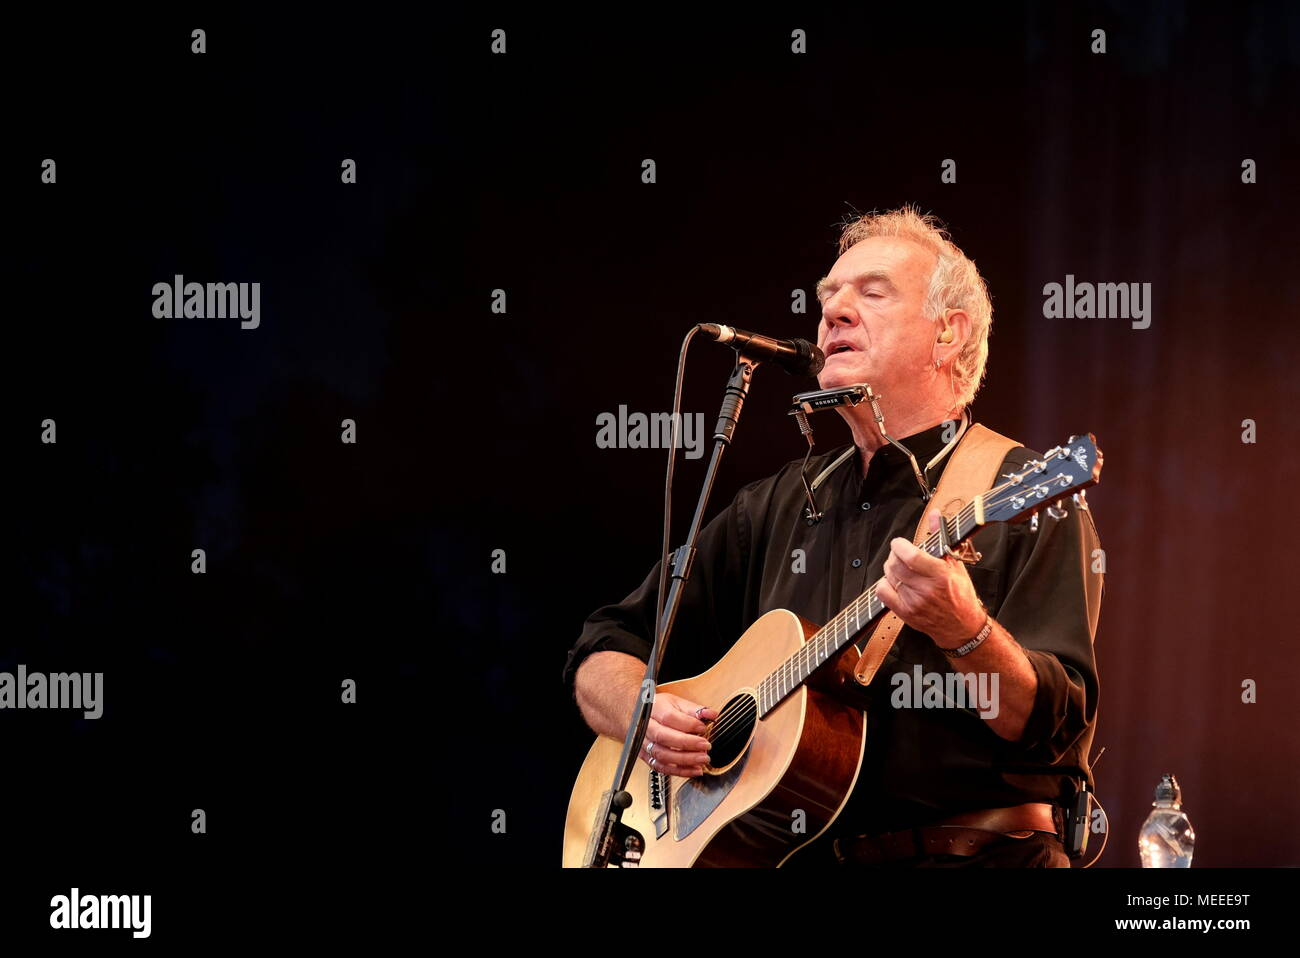 Fairport's Cropredy Convention, Banbury,  13th August 2016, UK, Ralph McTell live at Cropredy Festival - Stock Image